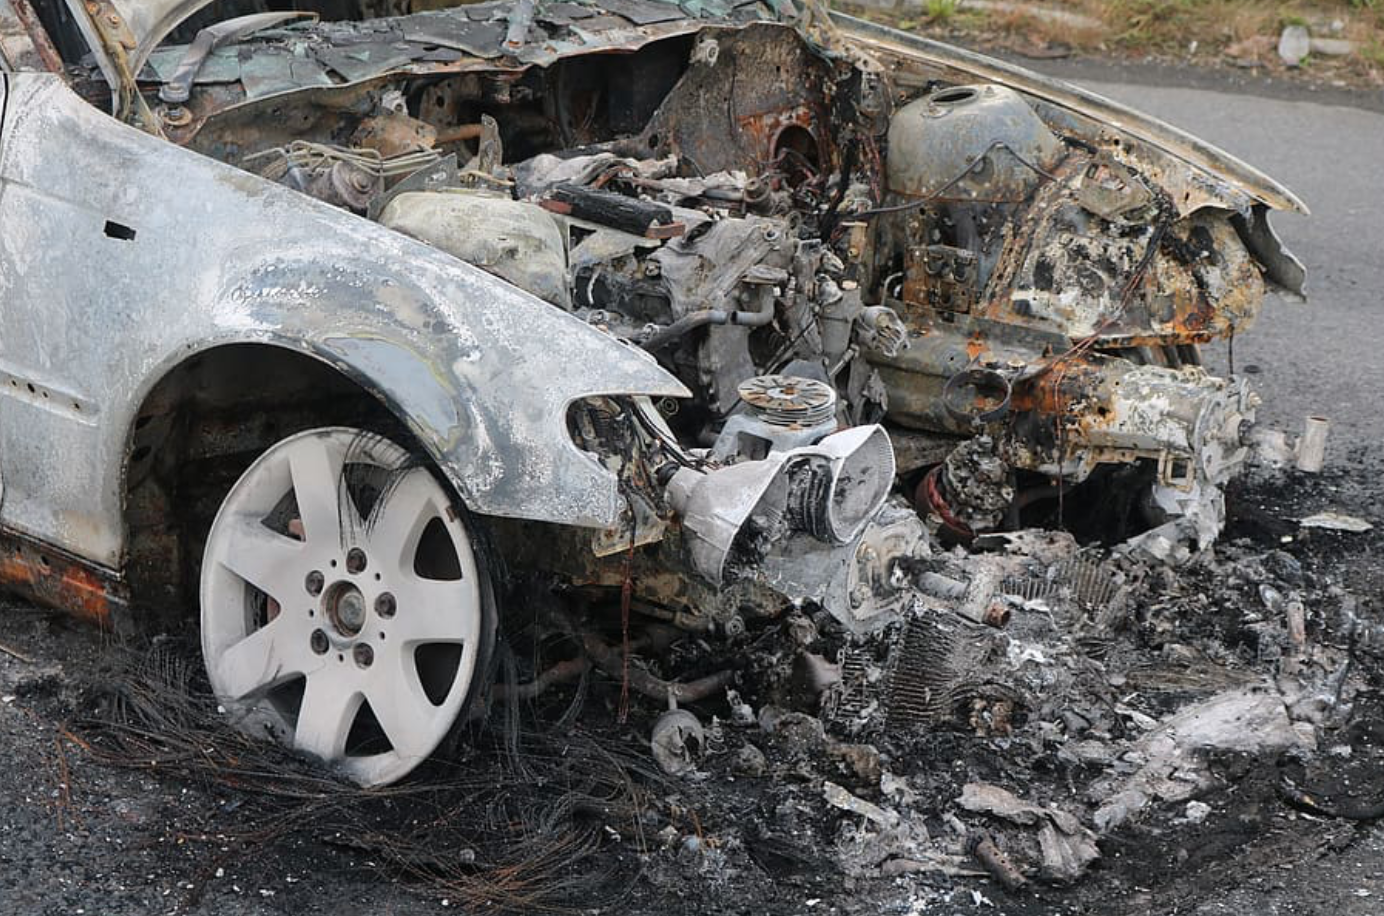 Side view of front end of vehicle after crash and fire; image by Jan2575, via Pixabay.com.